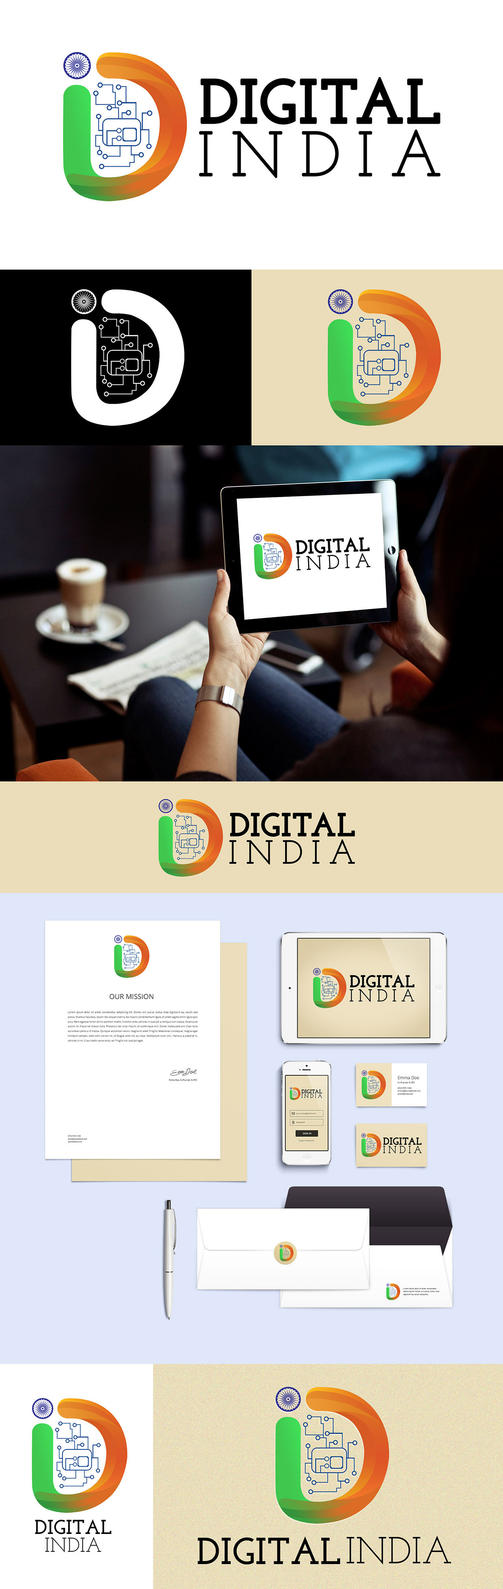 Digital India Logo Concept #1 By Prince Pal by princepal